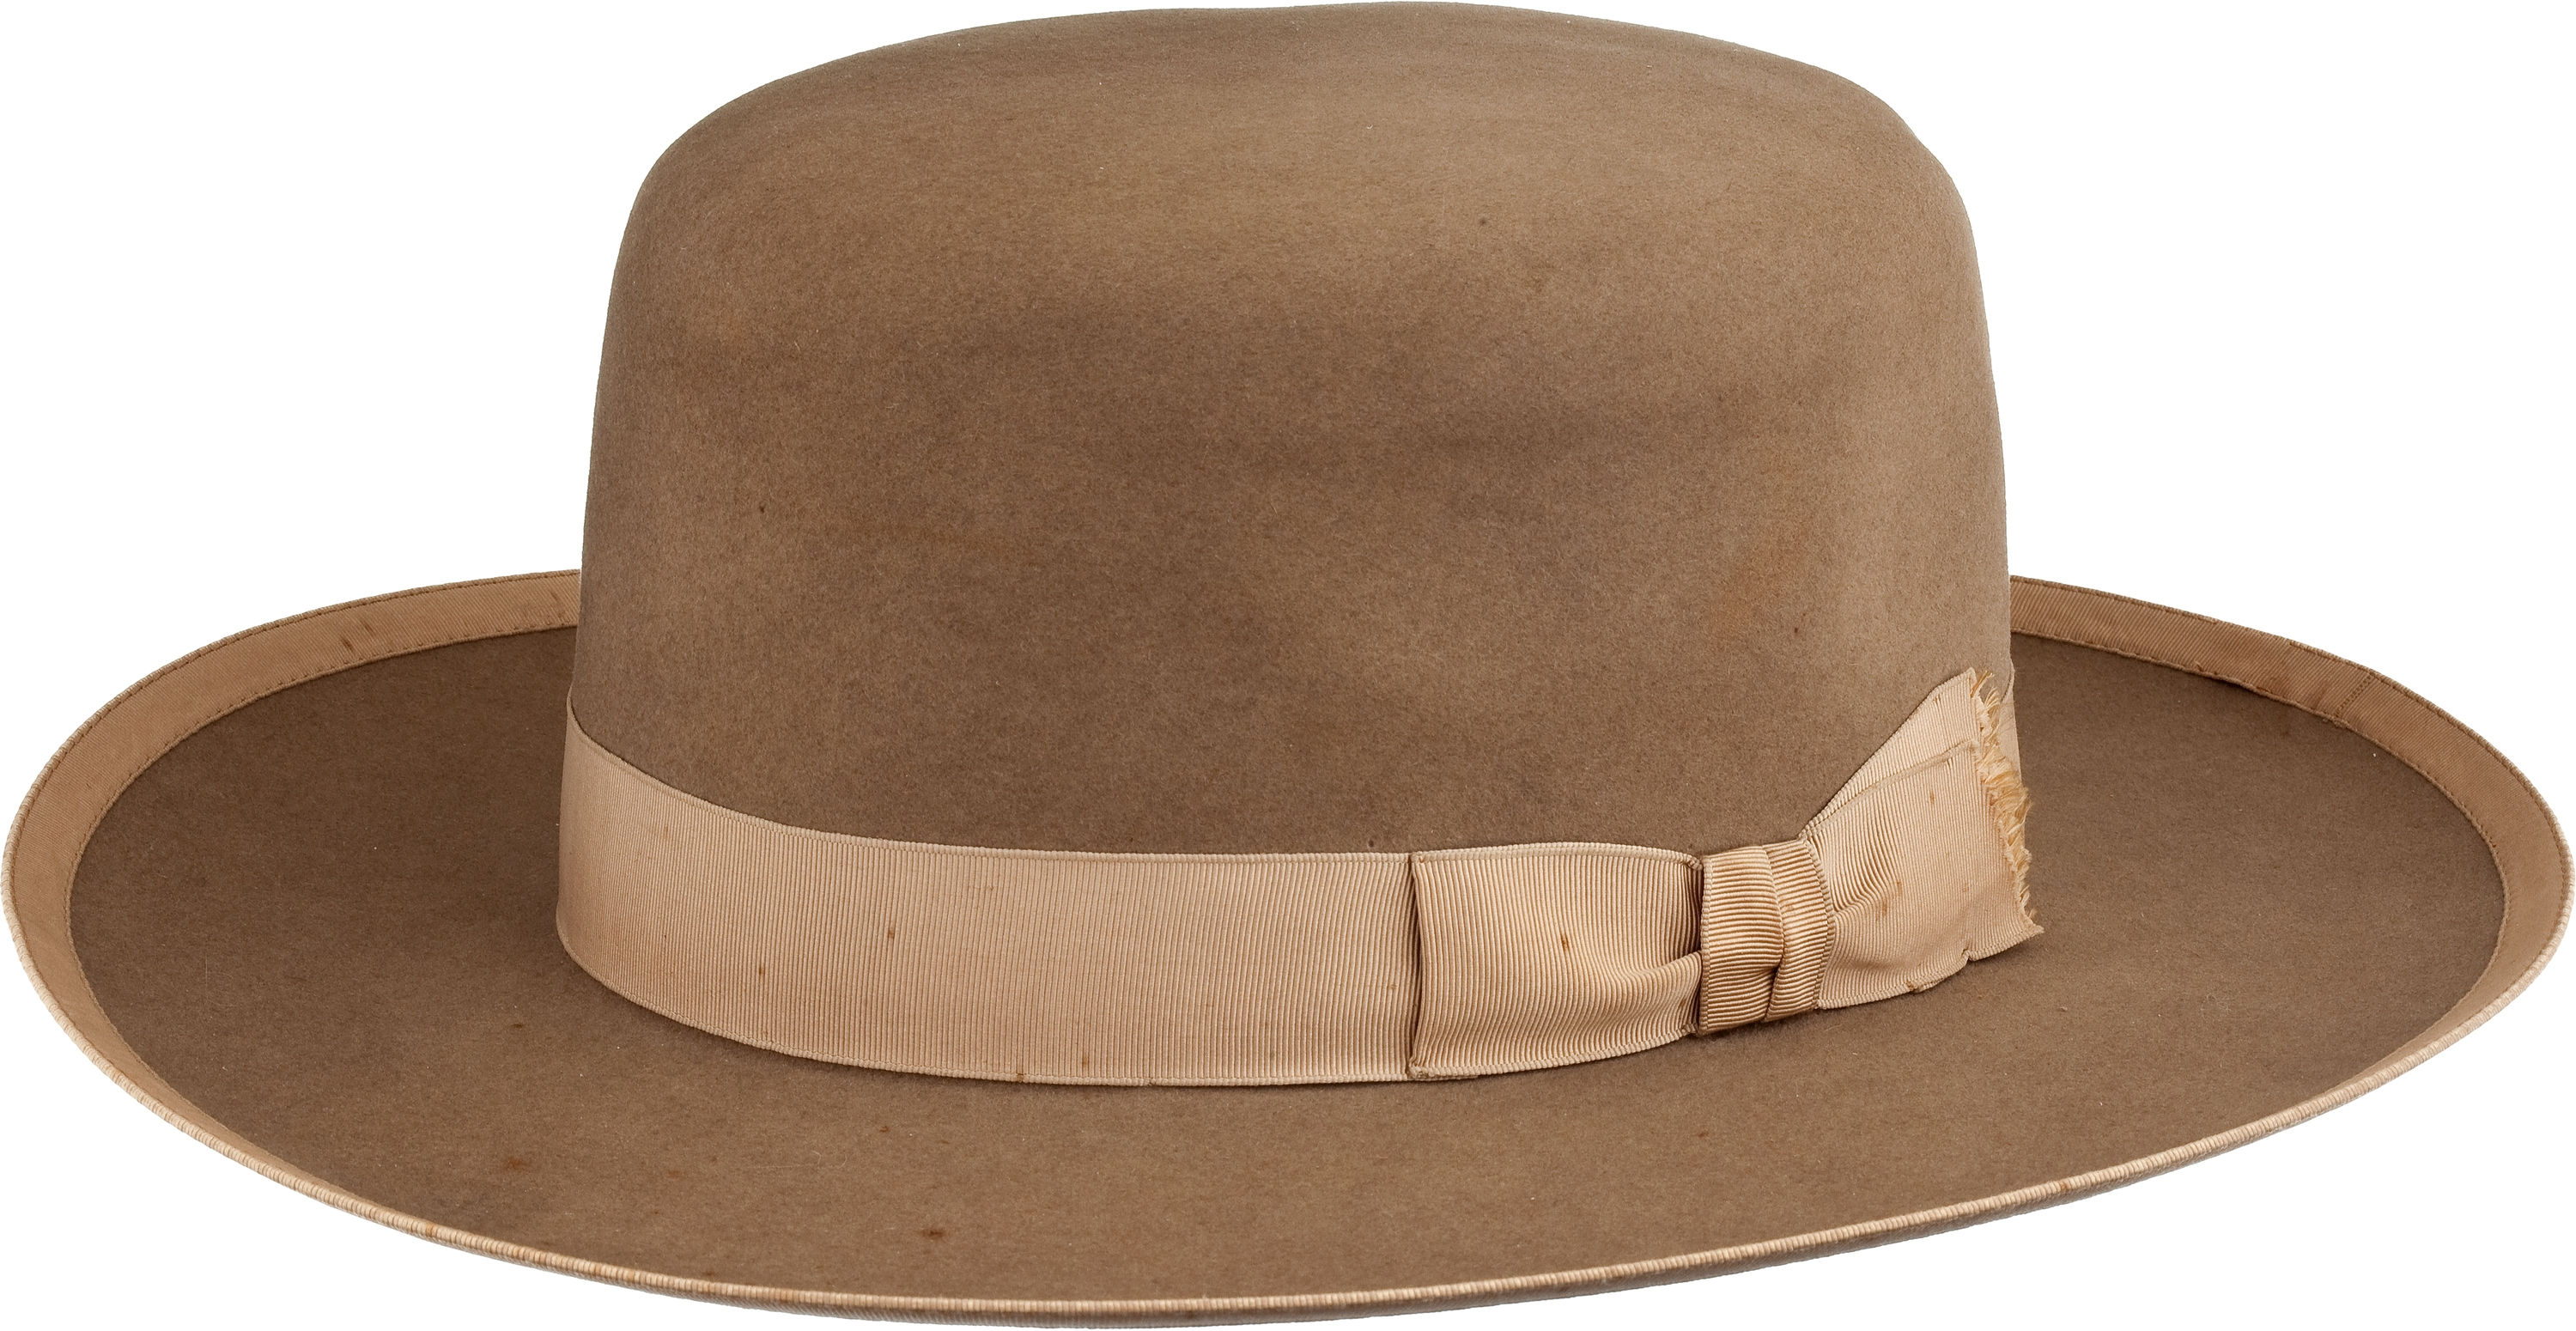 Stetson hat dating